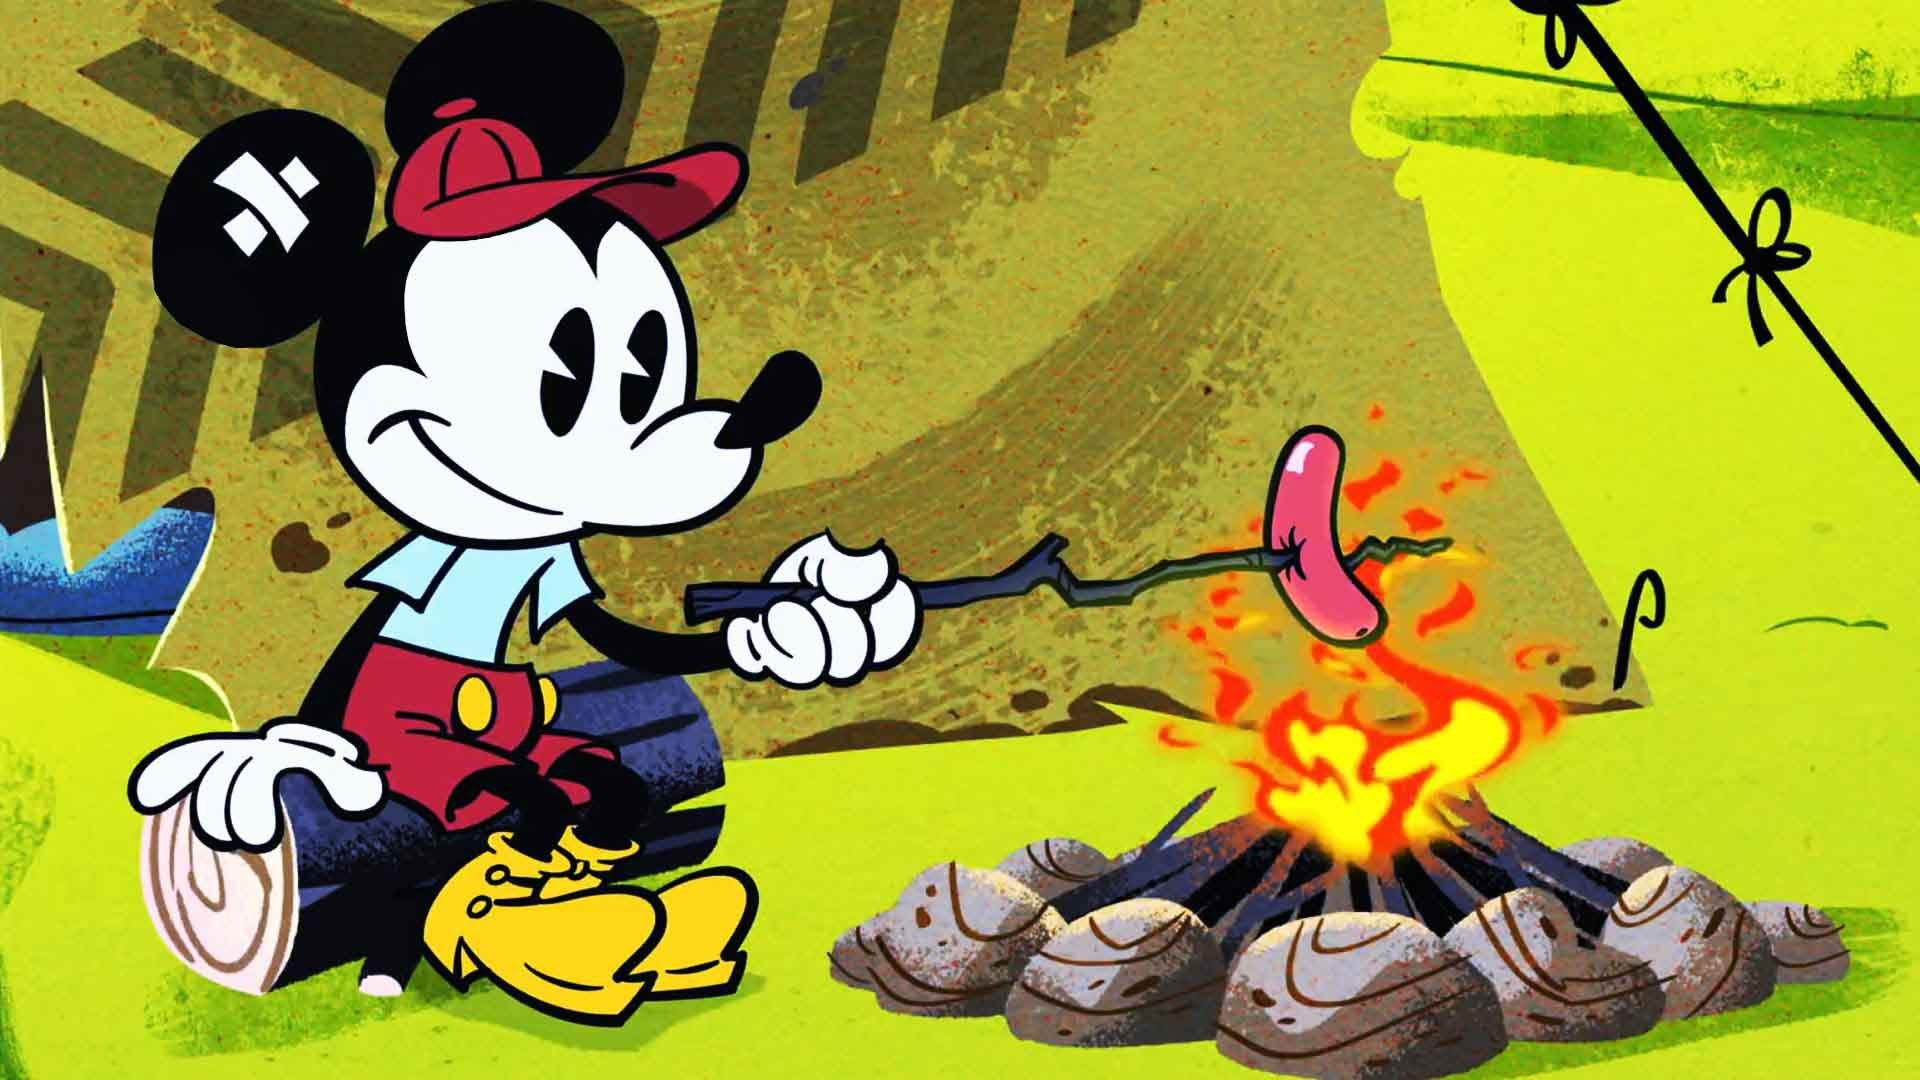 Free-download-mickey-mouse-image-1920x1080-kB-wallpaper-wp3605852